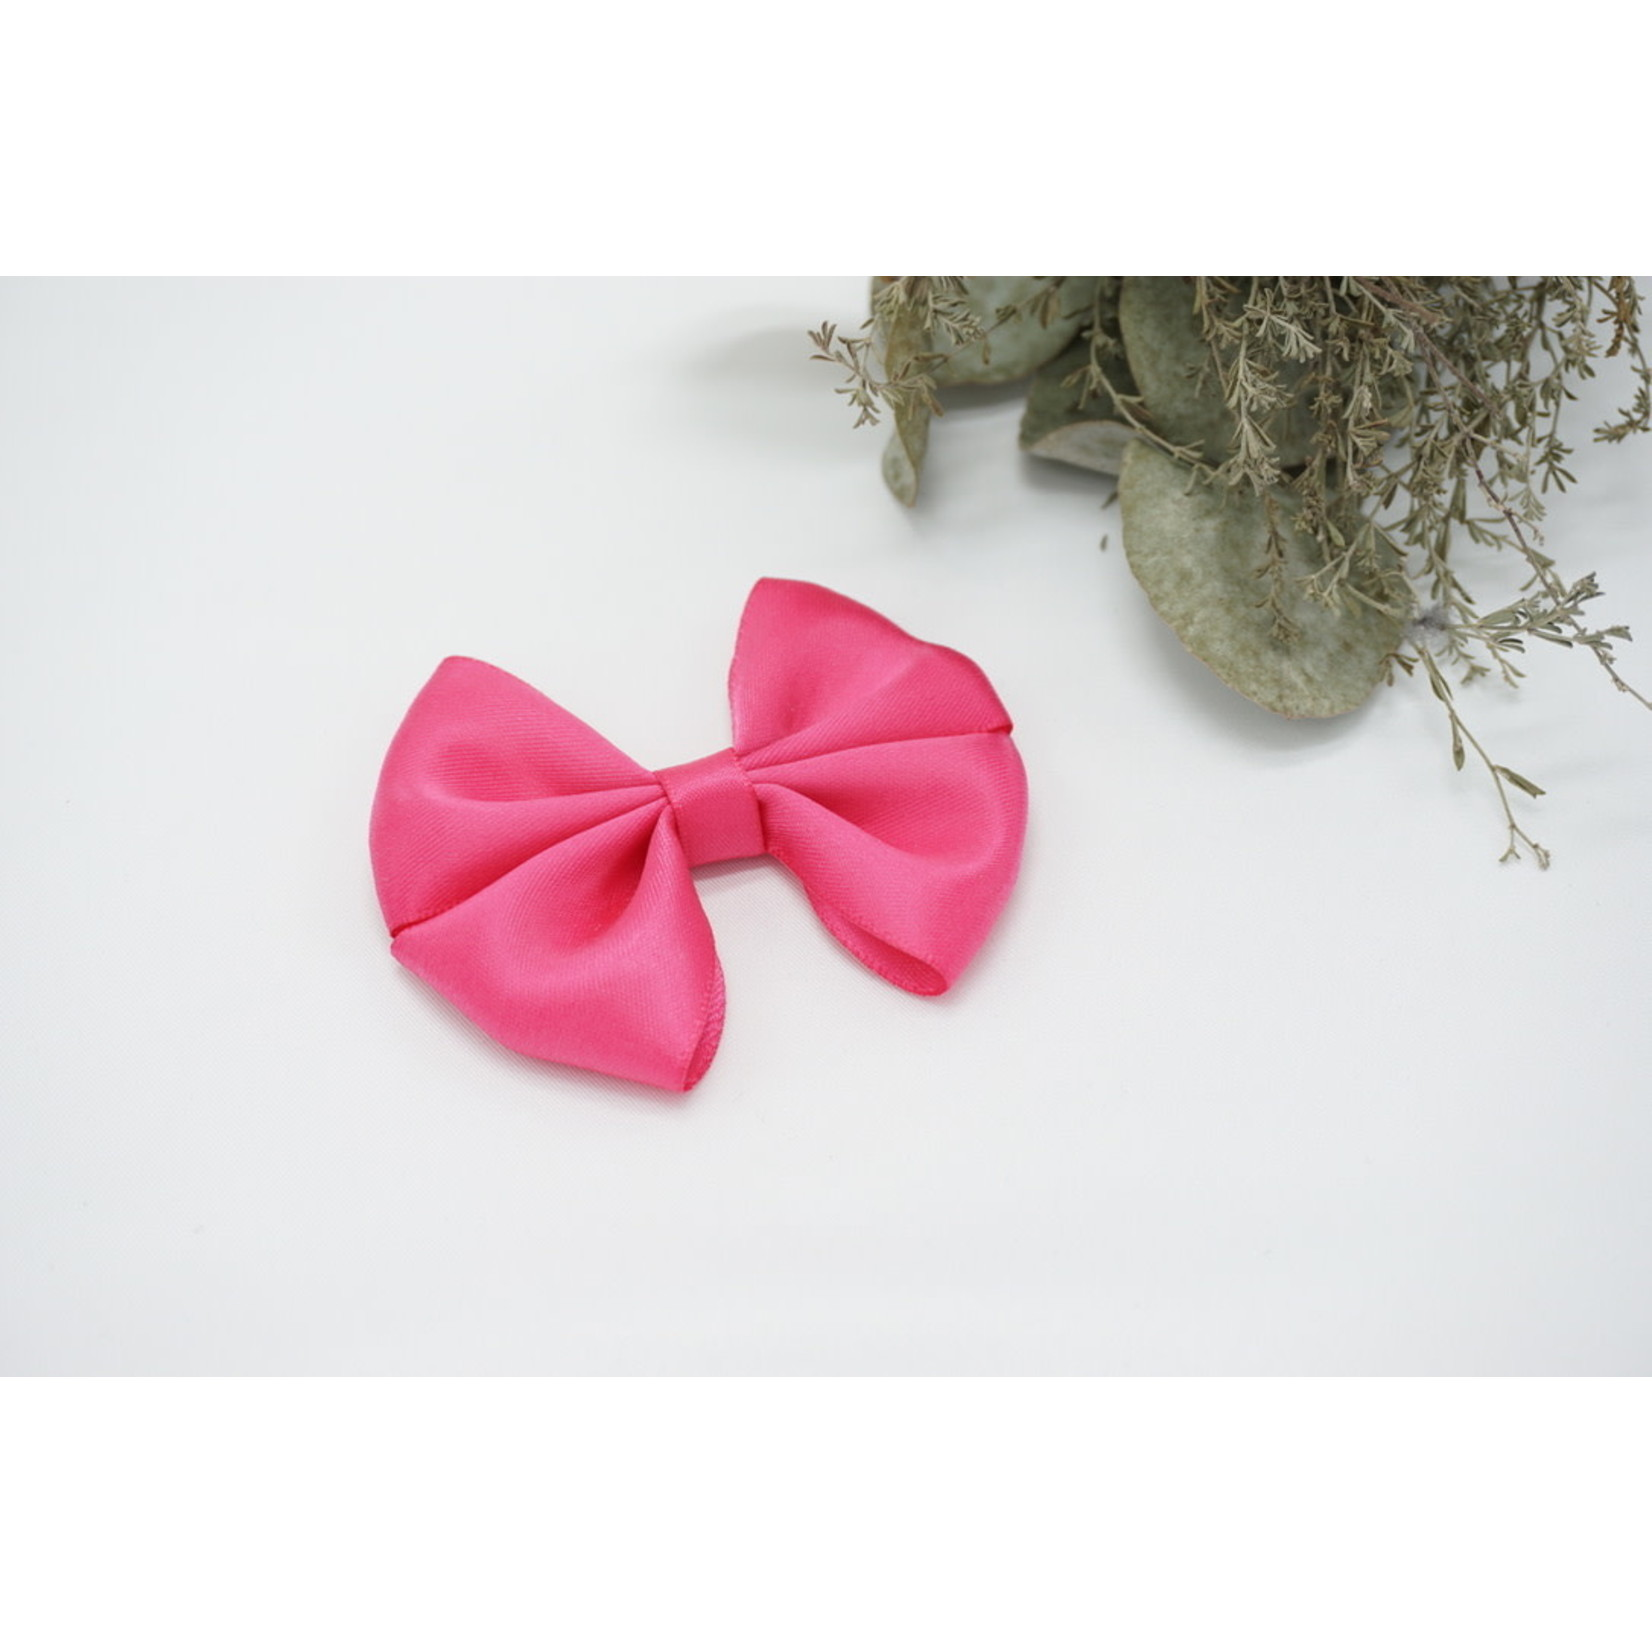 Copy of Satin Bow - Dusty Pink